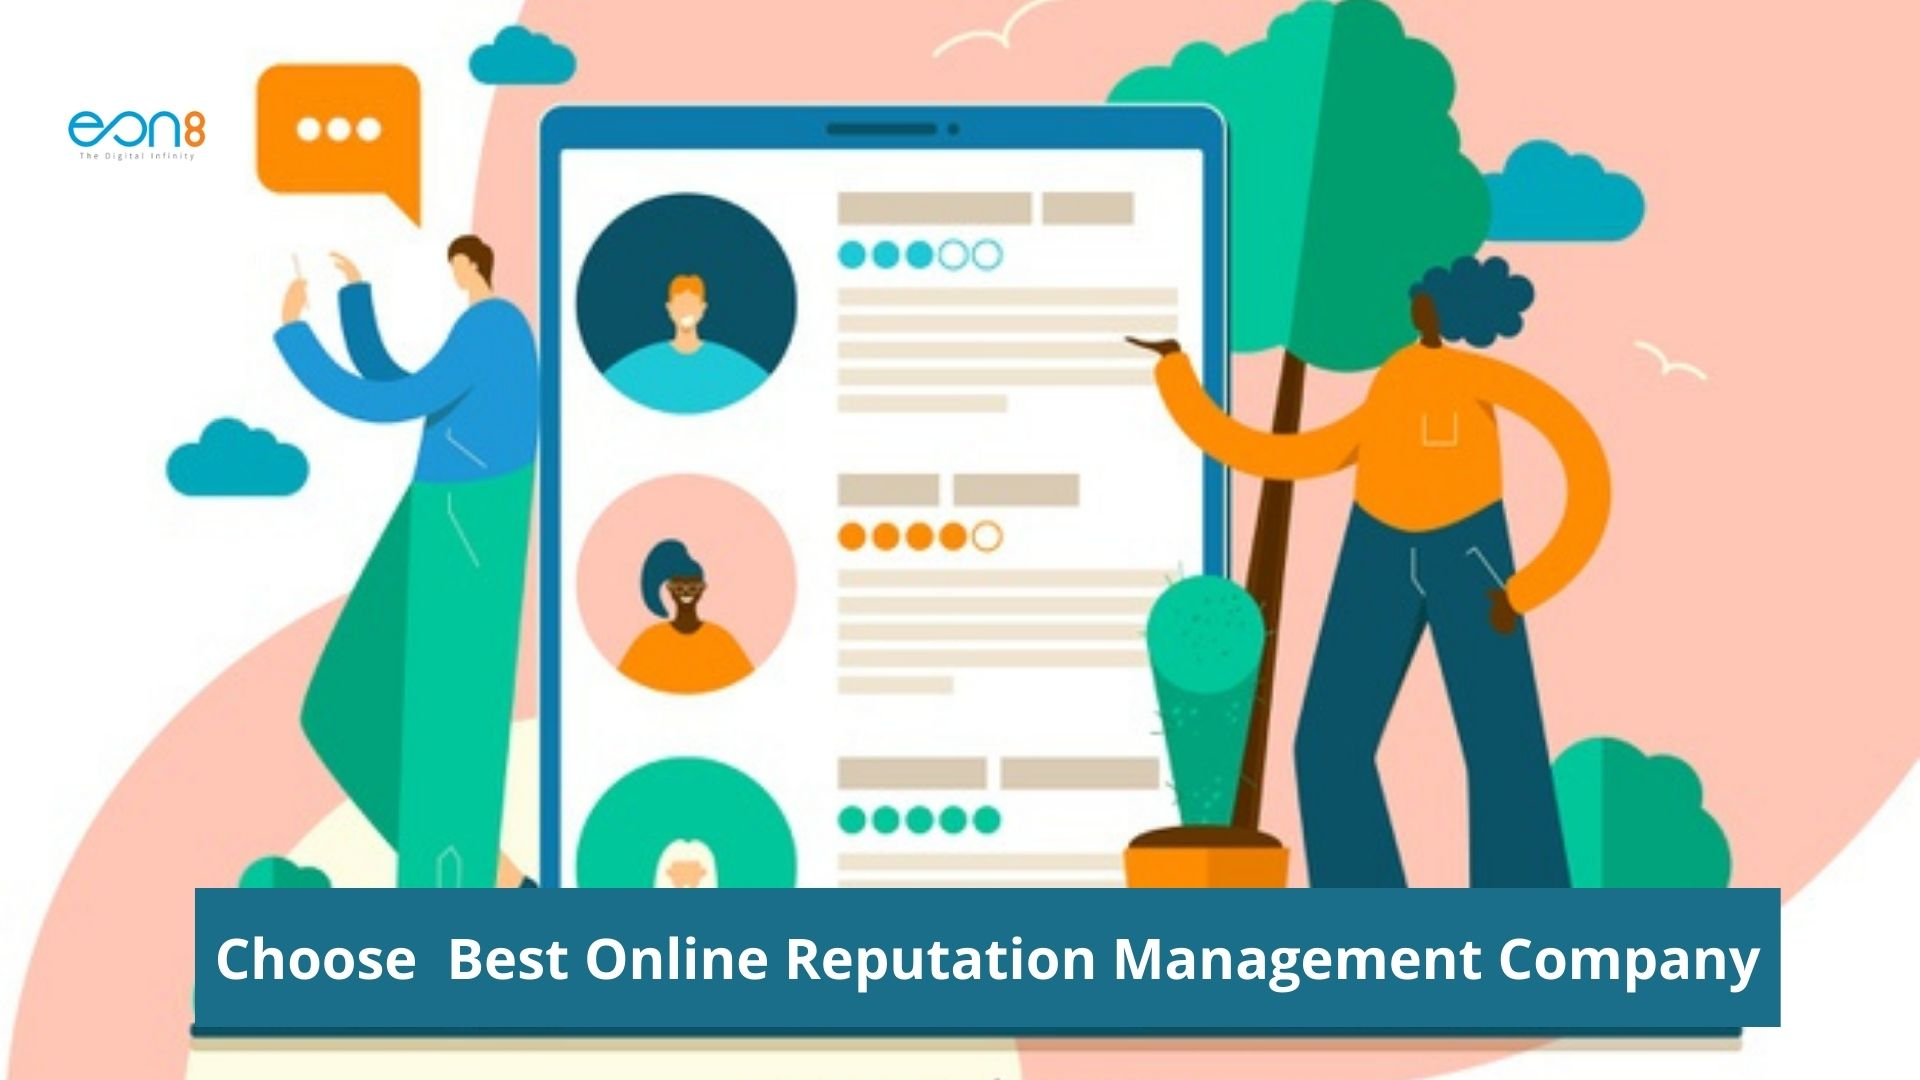 Tips to Choose the Best Online Reputation Management Company